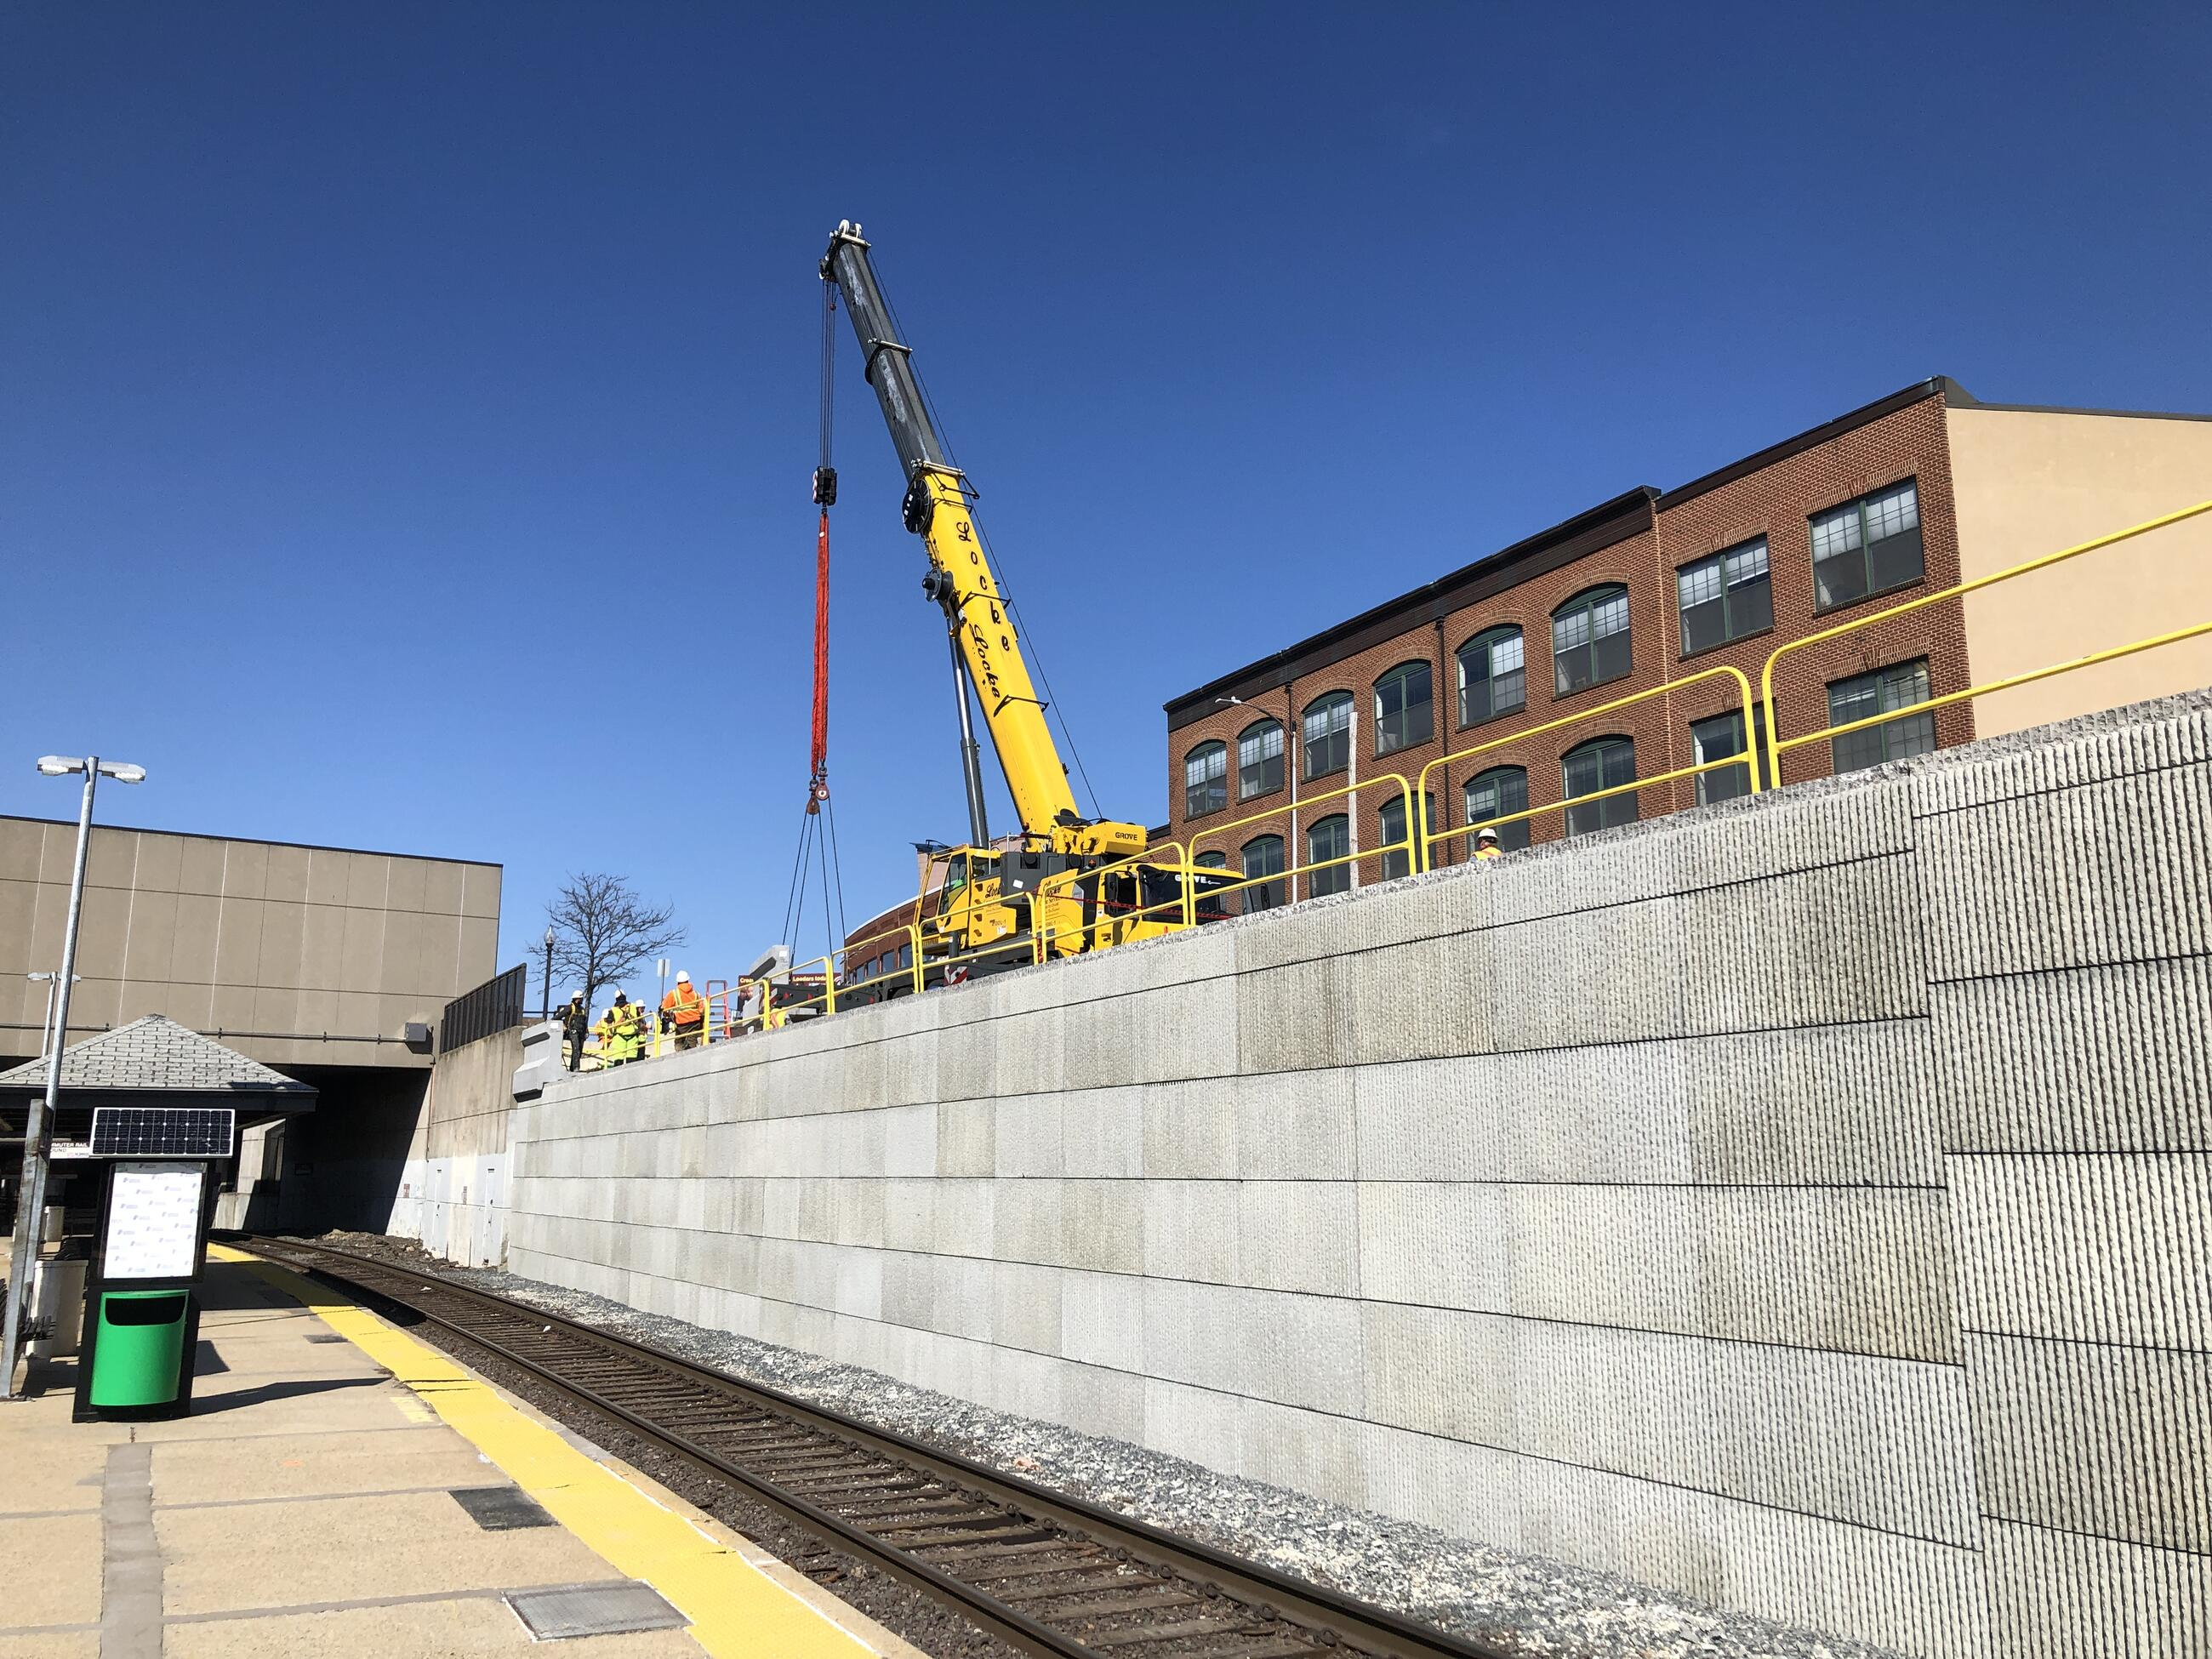 A new concrete retaining wall next to the tracks at Porter Station. Construction workers and equipment are visible on top on the wall.